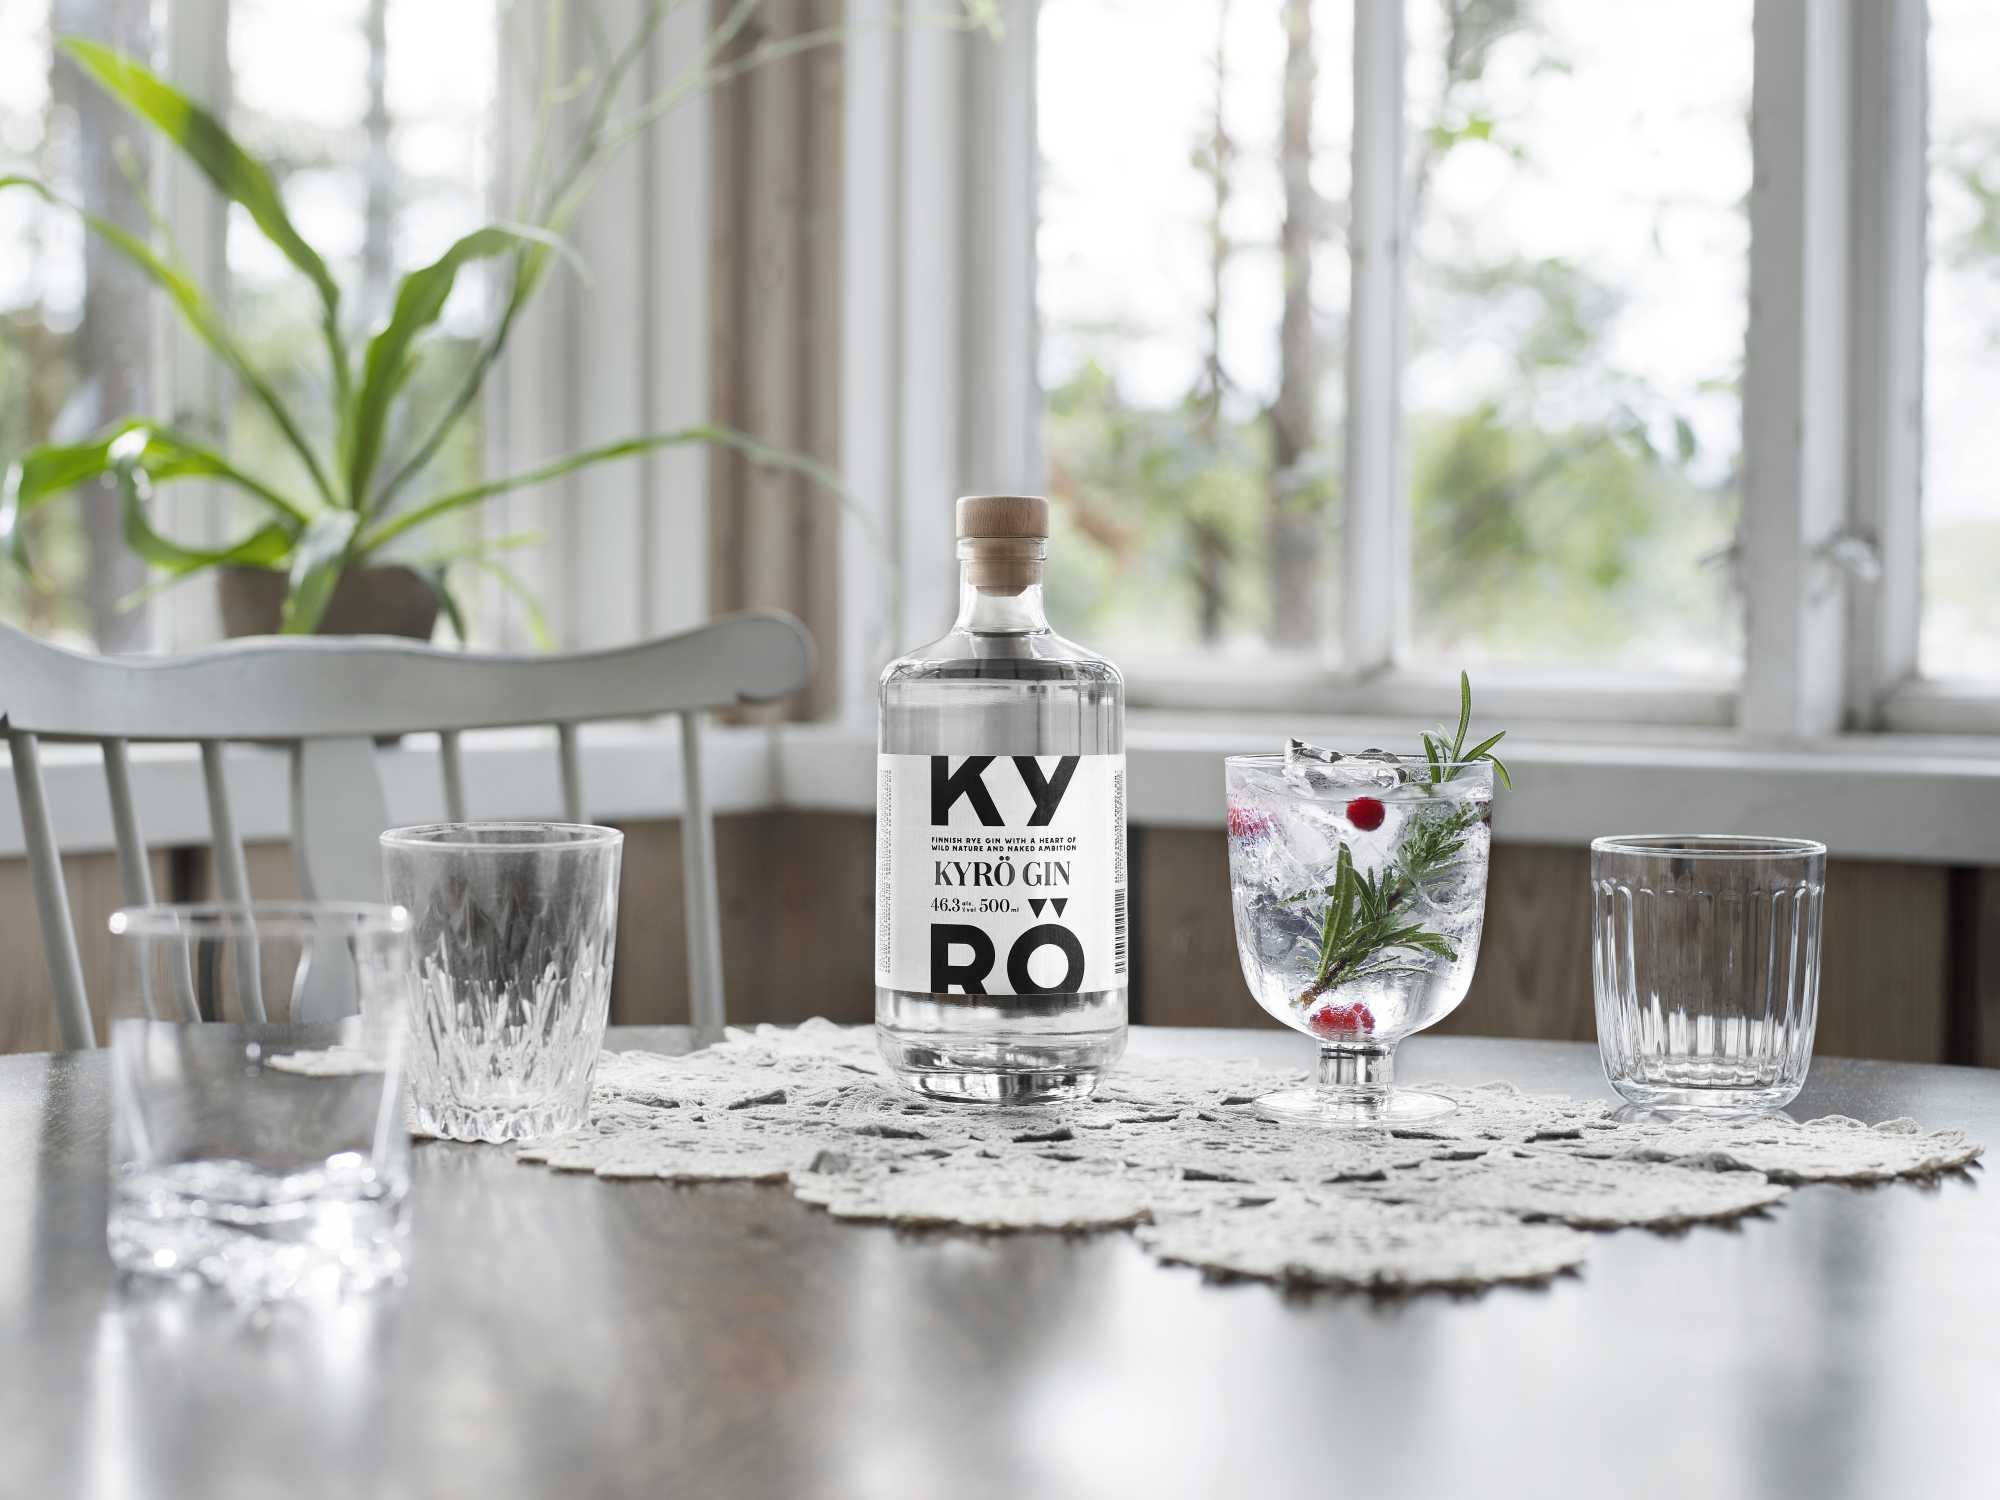 A bottle of Kyrö Gin standing on a dining table in a light-filled room next to an Iittala cocktail glass filled with Gin & Tonic, rosemary, and cranberries. Horizontal.